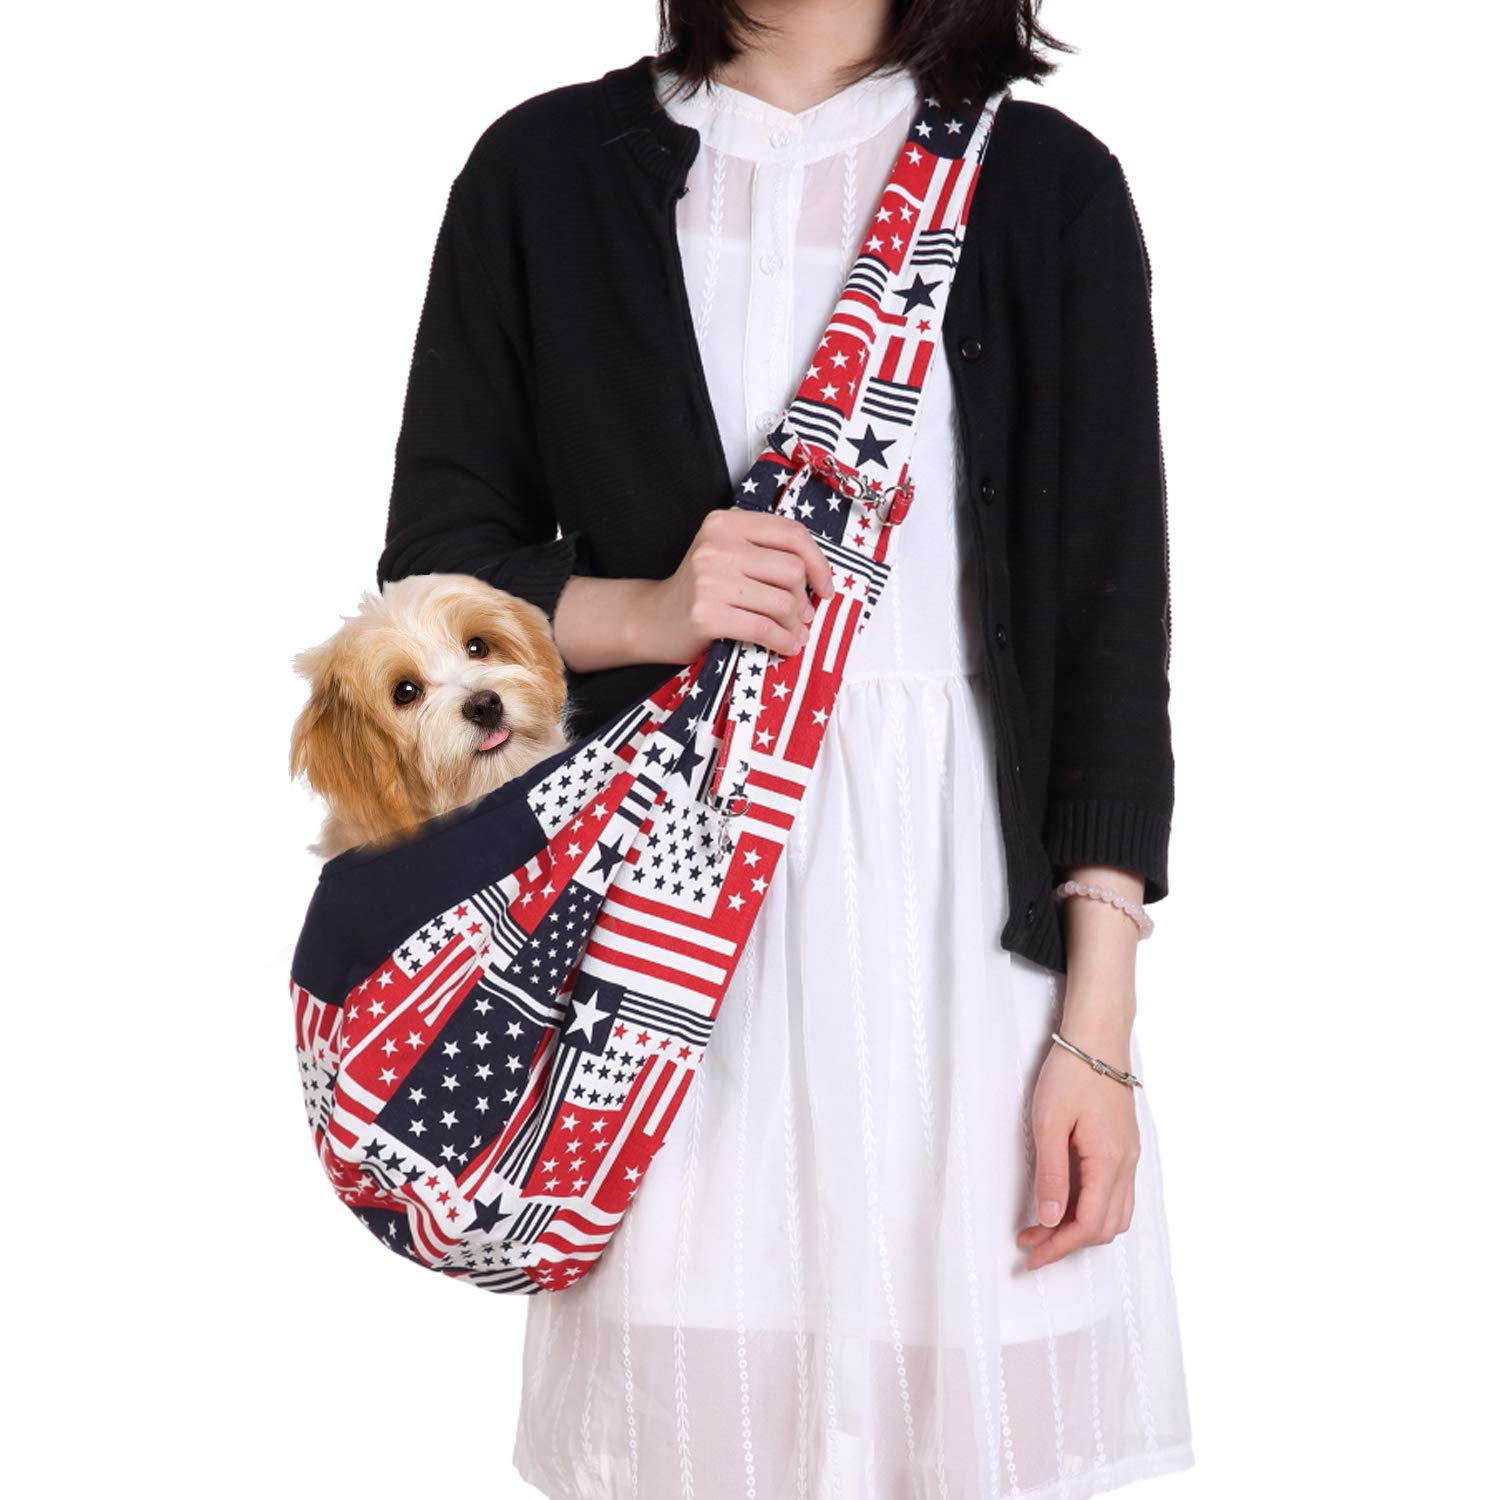 Flag pattern adjustable swee Hands-Free Reversible Pet Dog Cat Sling Carrier Bag Travel Tote Soft Comfortable Puppy Kitty Rabbit Double-Sided Pouch Shoulder Carry Tote Handbag (Flag Pattern Adjustable)